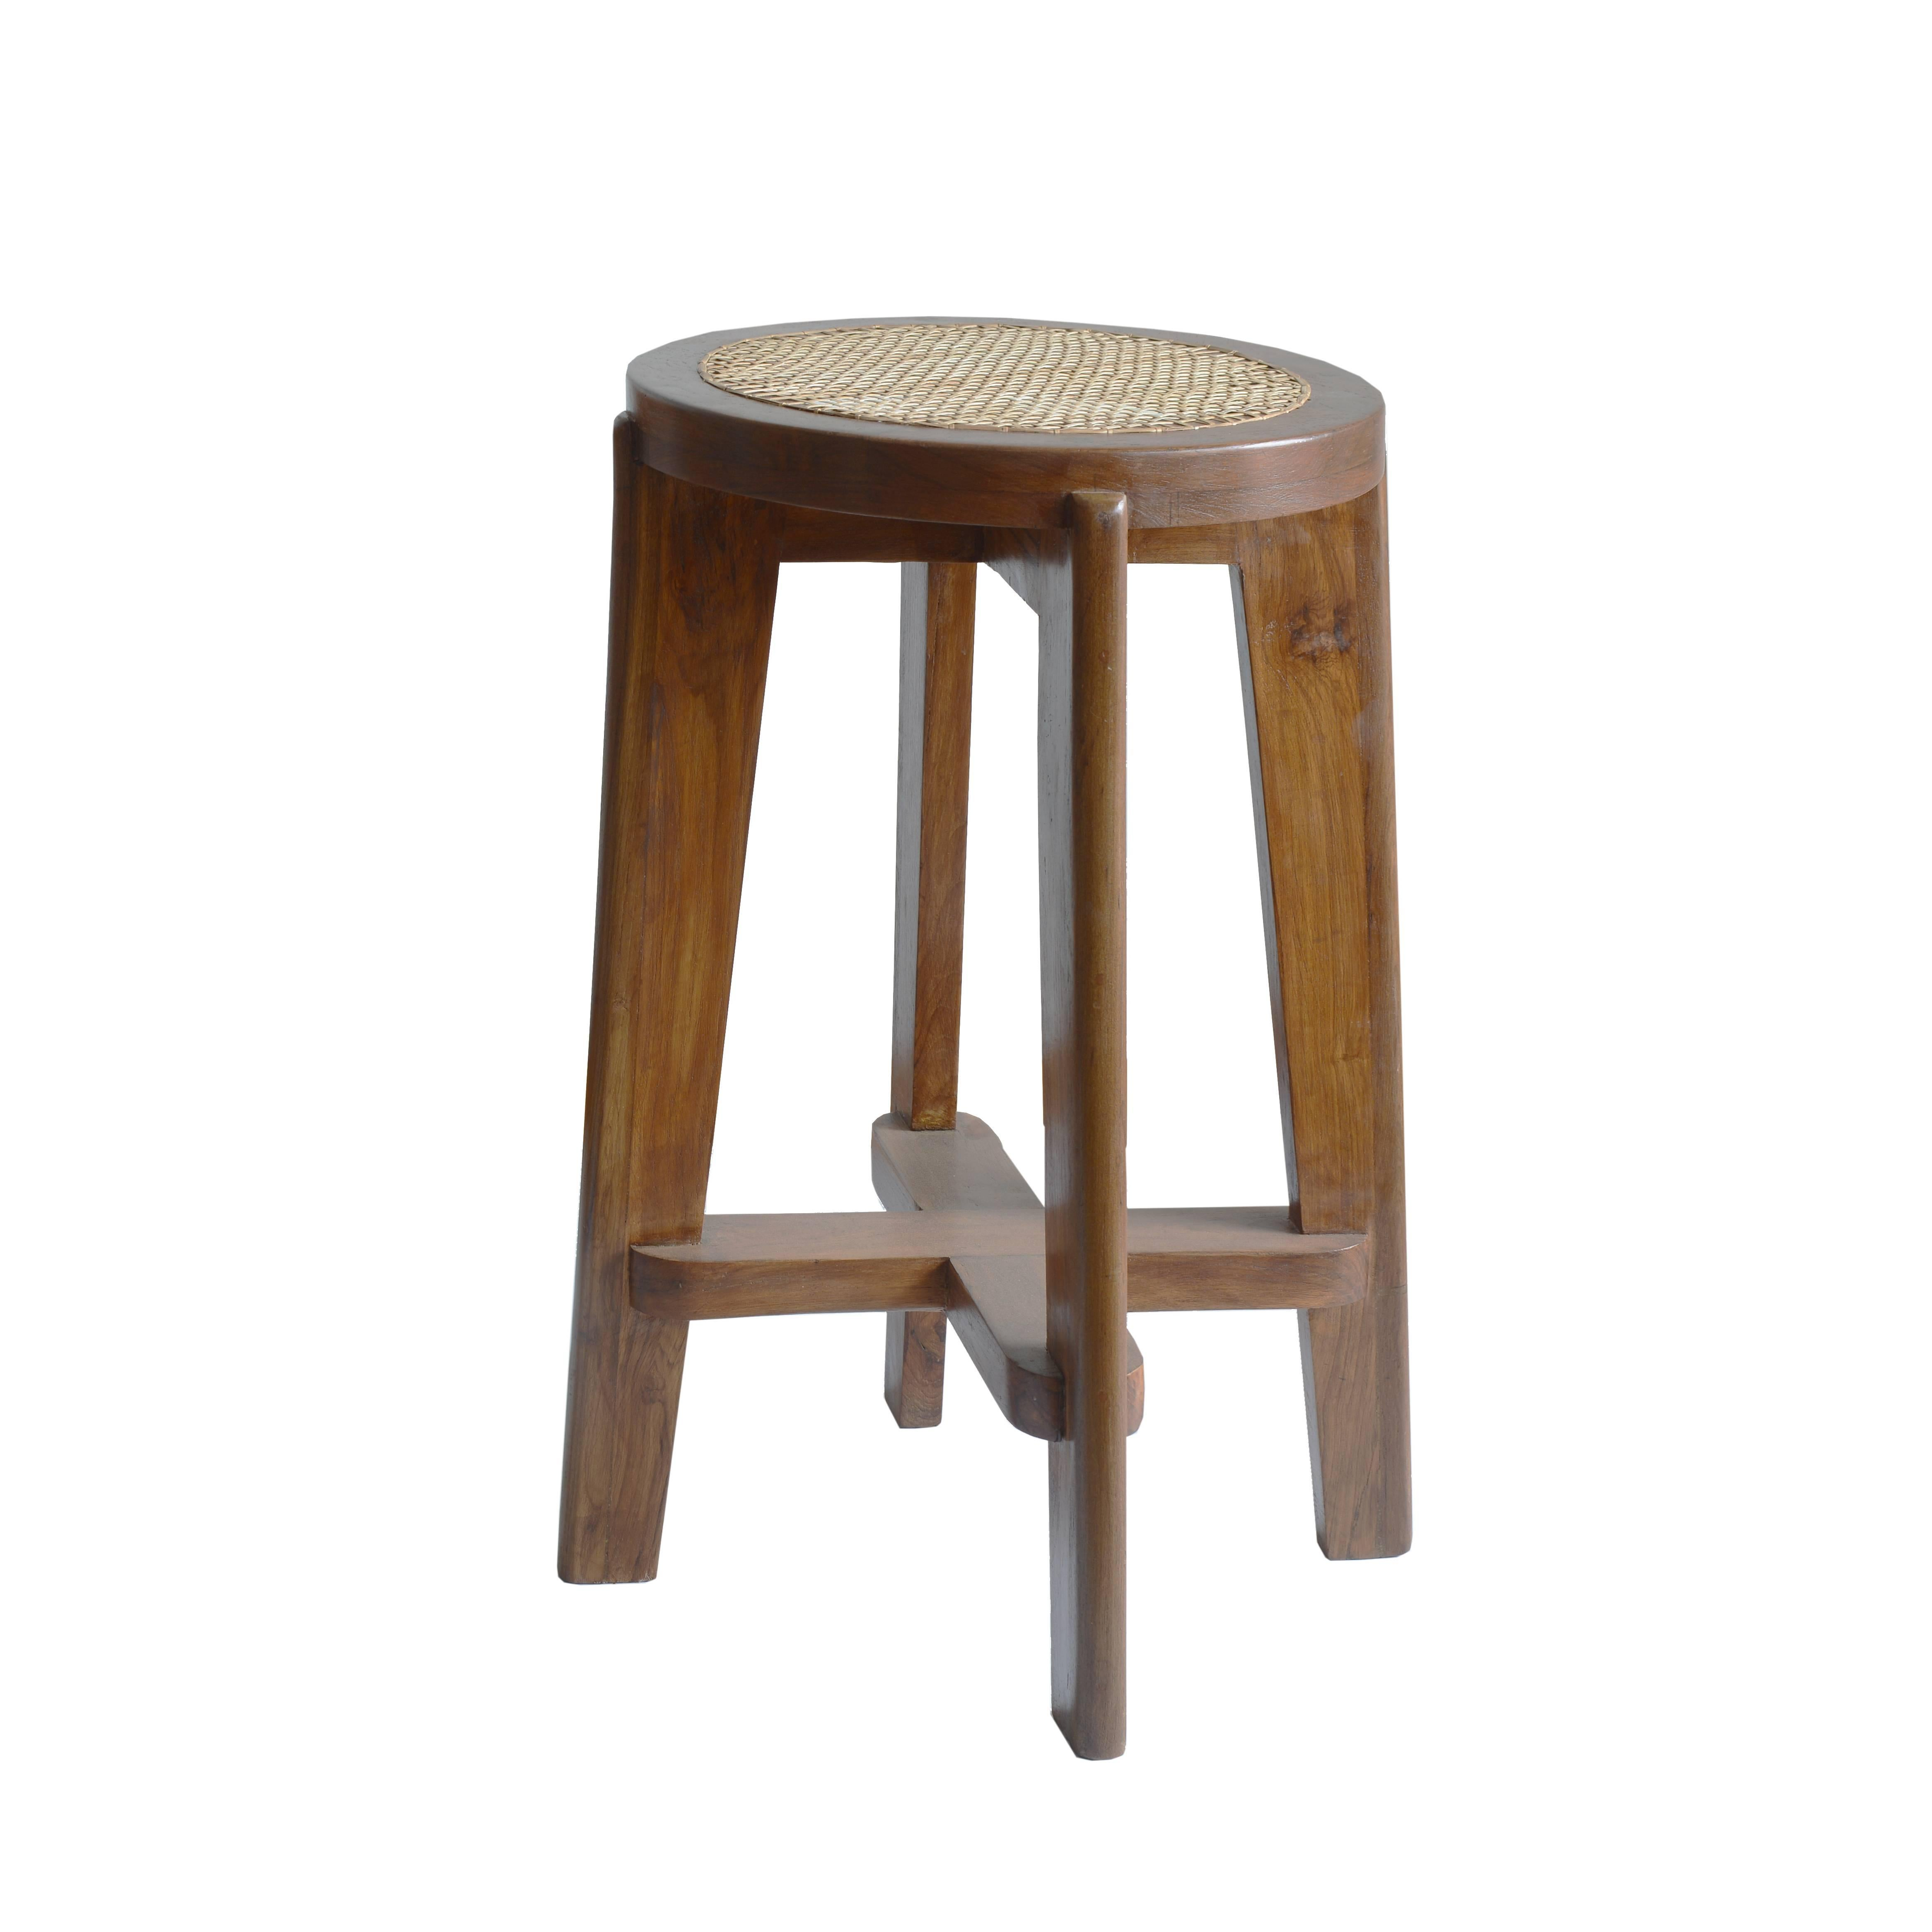 """Pierre Jeanneret """"High Stool with Canework"""" from Chandigarh"""